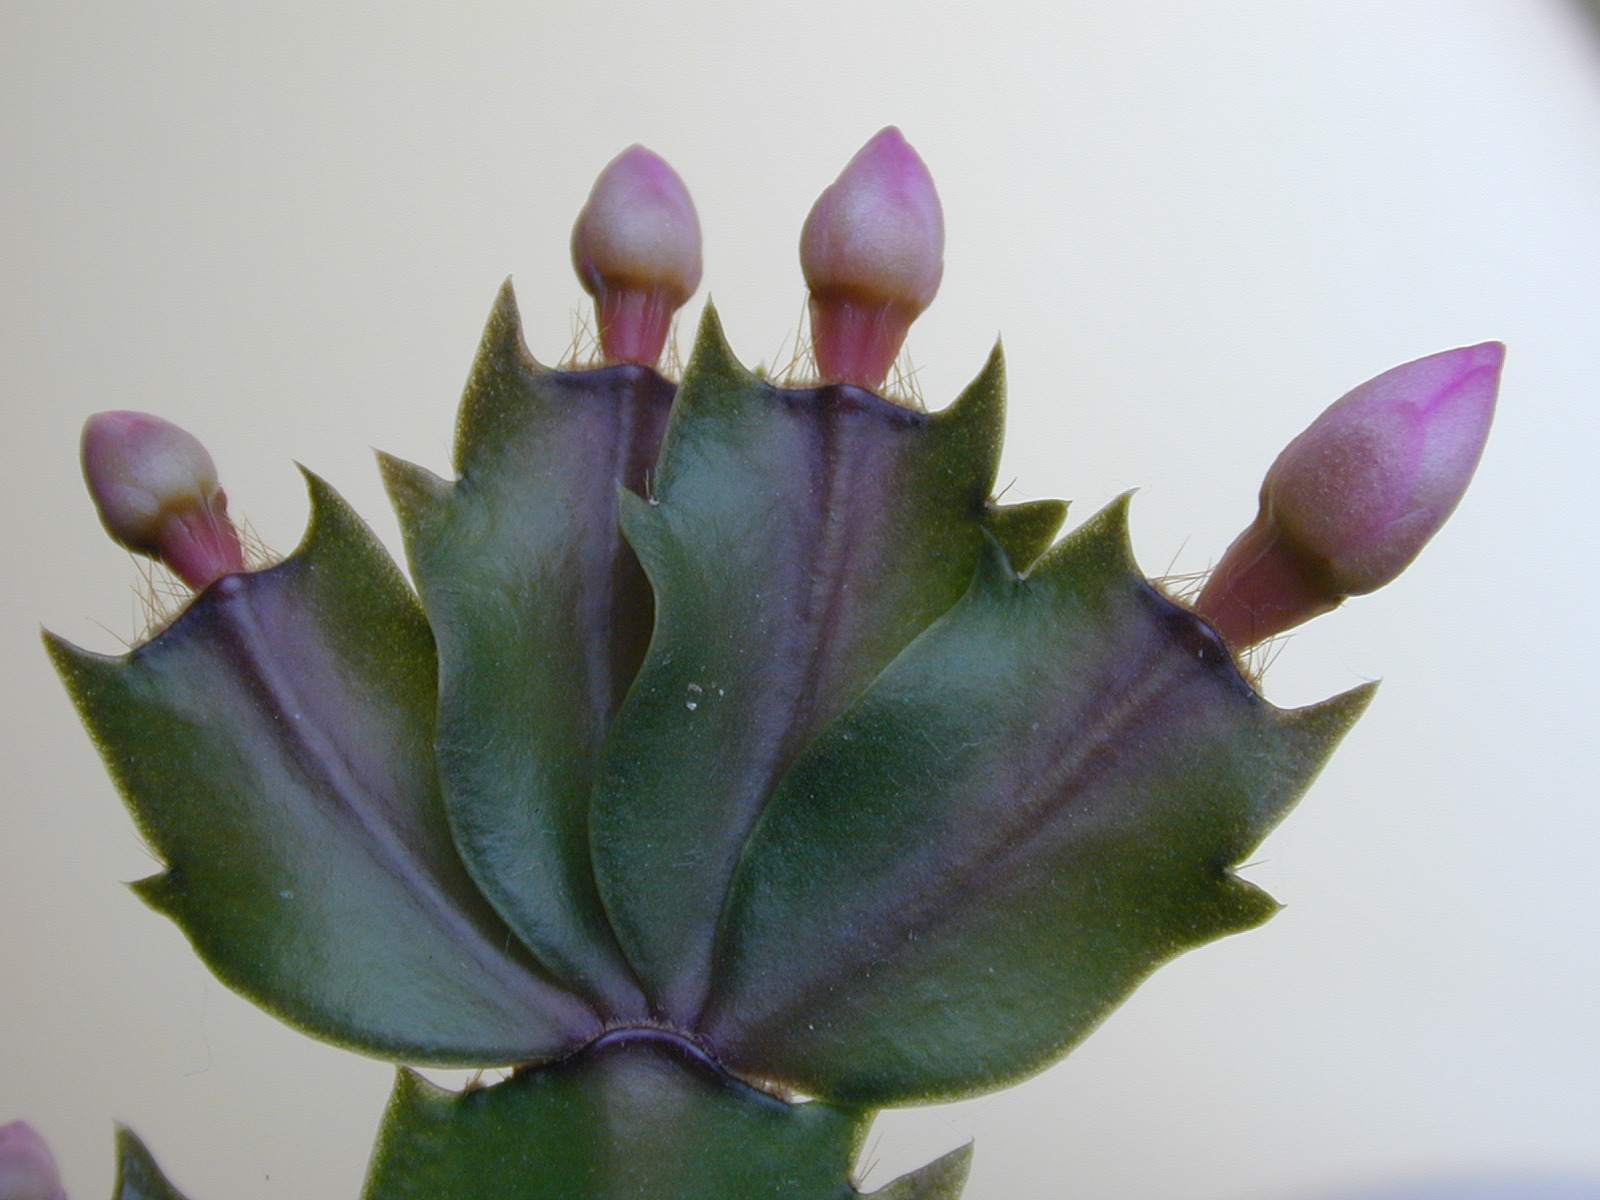 Imageafter Images Plant Flower Flowers Catus Spiky Bud Buds